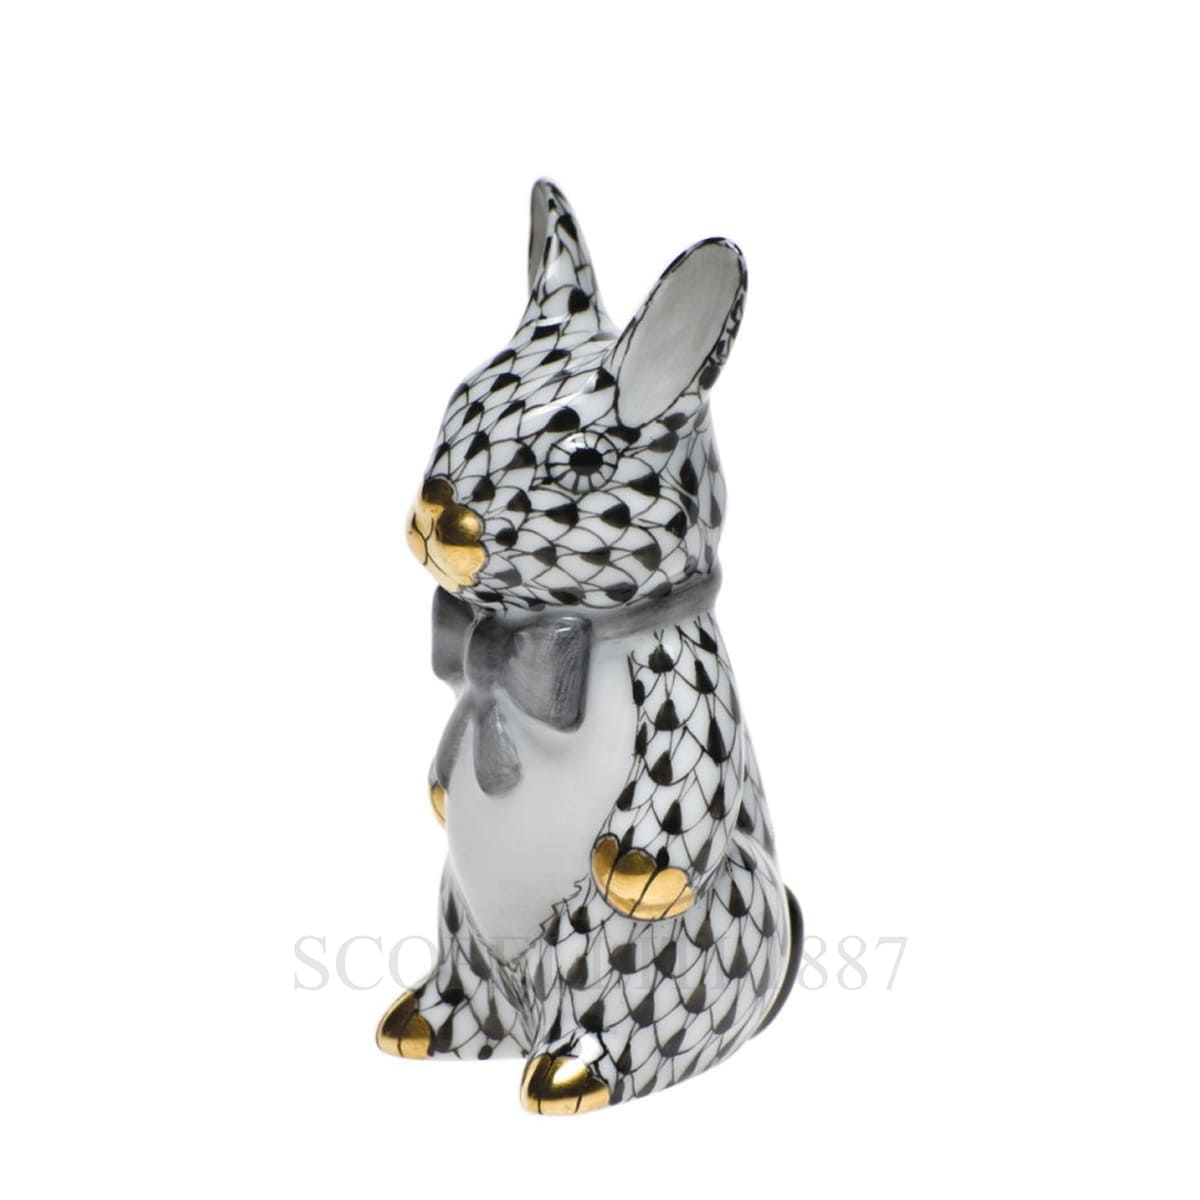 herend porcelain bunny figurine black and white